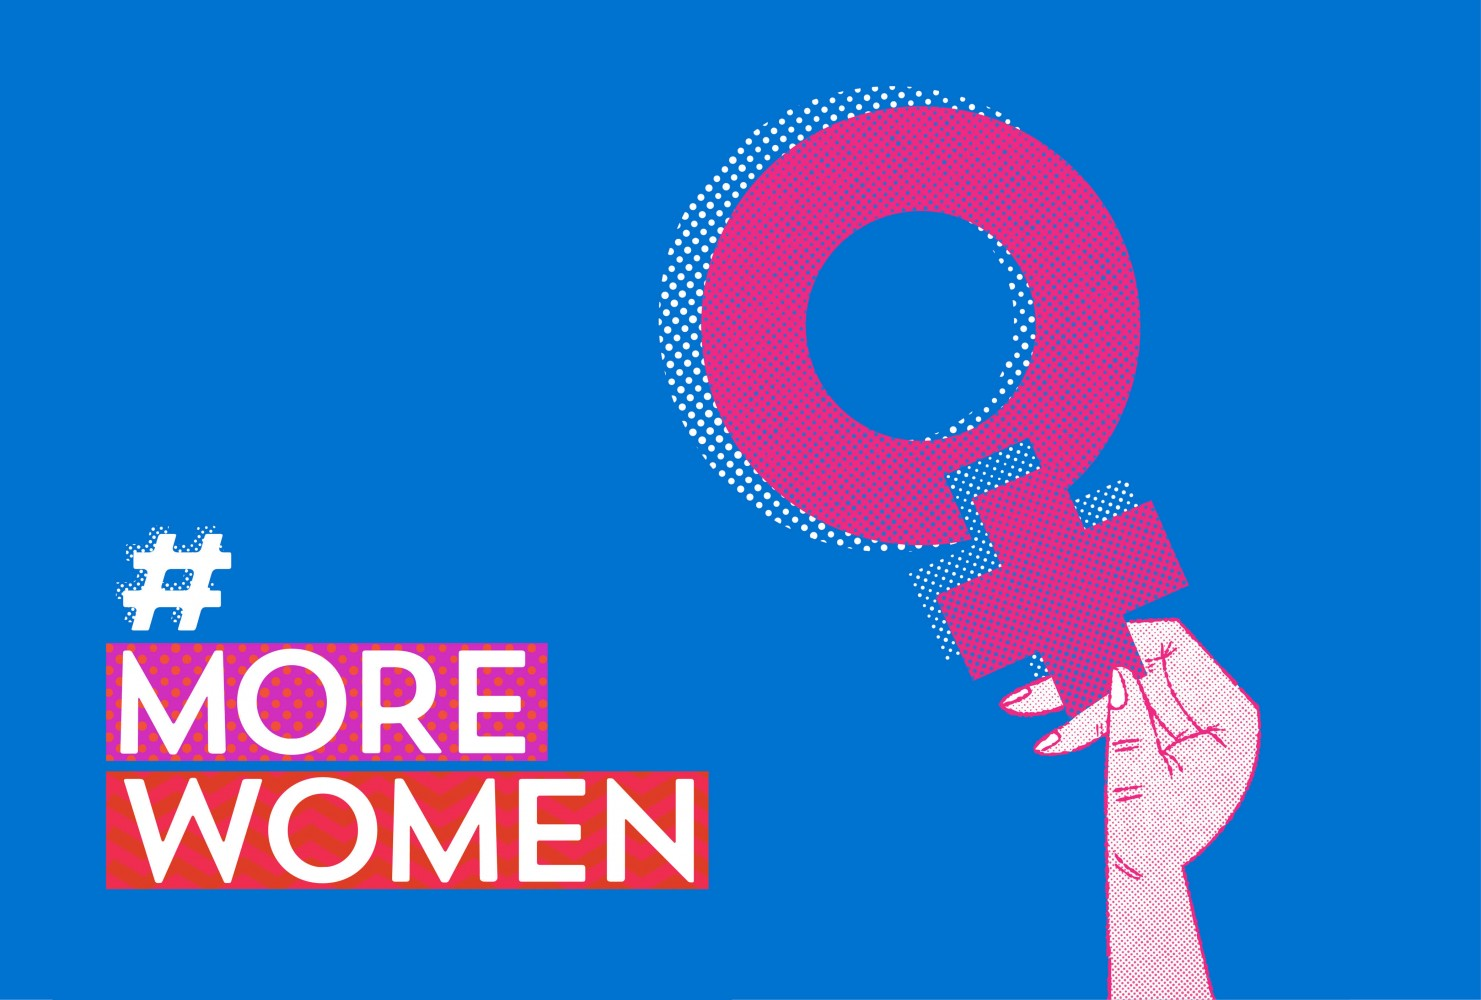 The #MOREWOMEN campaign to support more women in Irish politics, designed by Ruth Martin and Paula McEntee at Red Dog in Dublin. Selected for the 100 Archive 2017.jpg